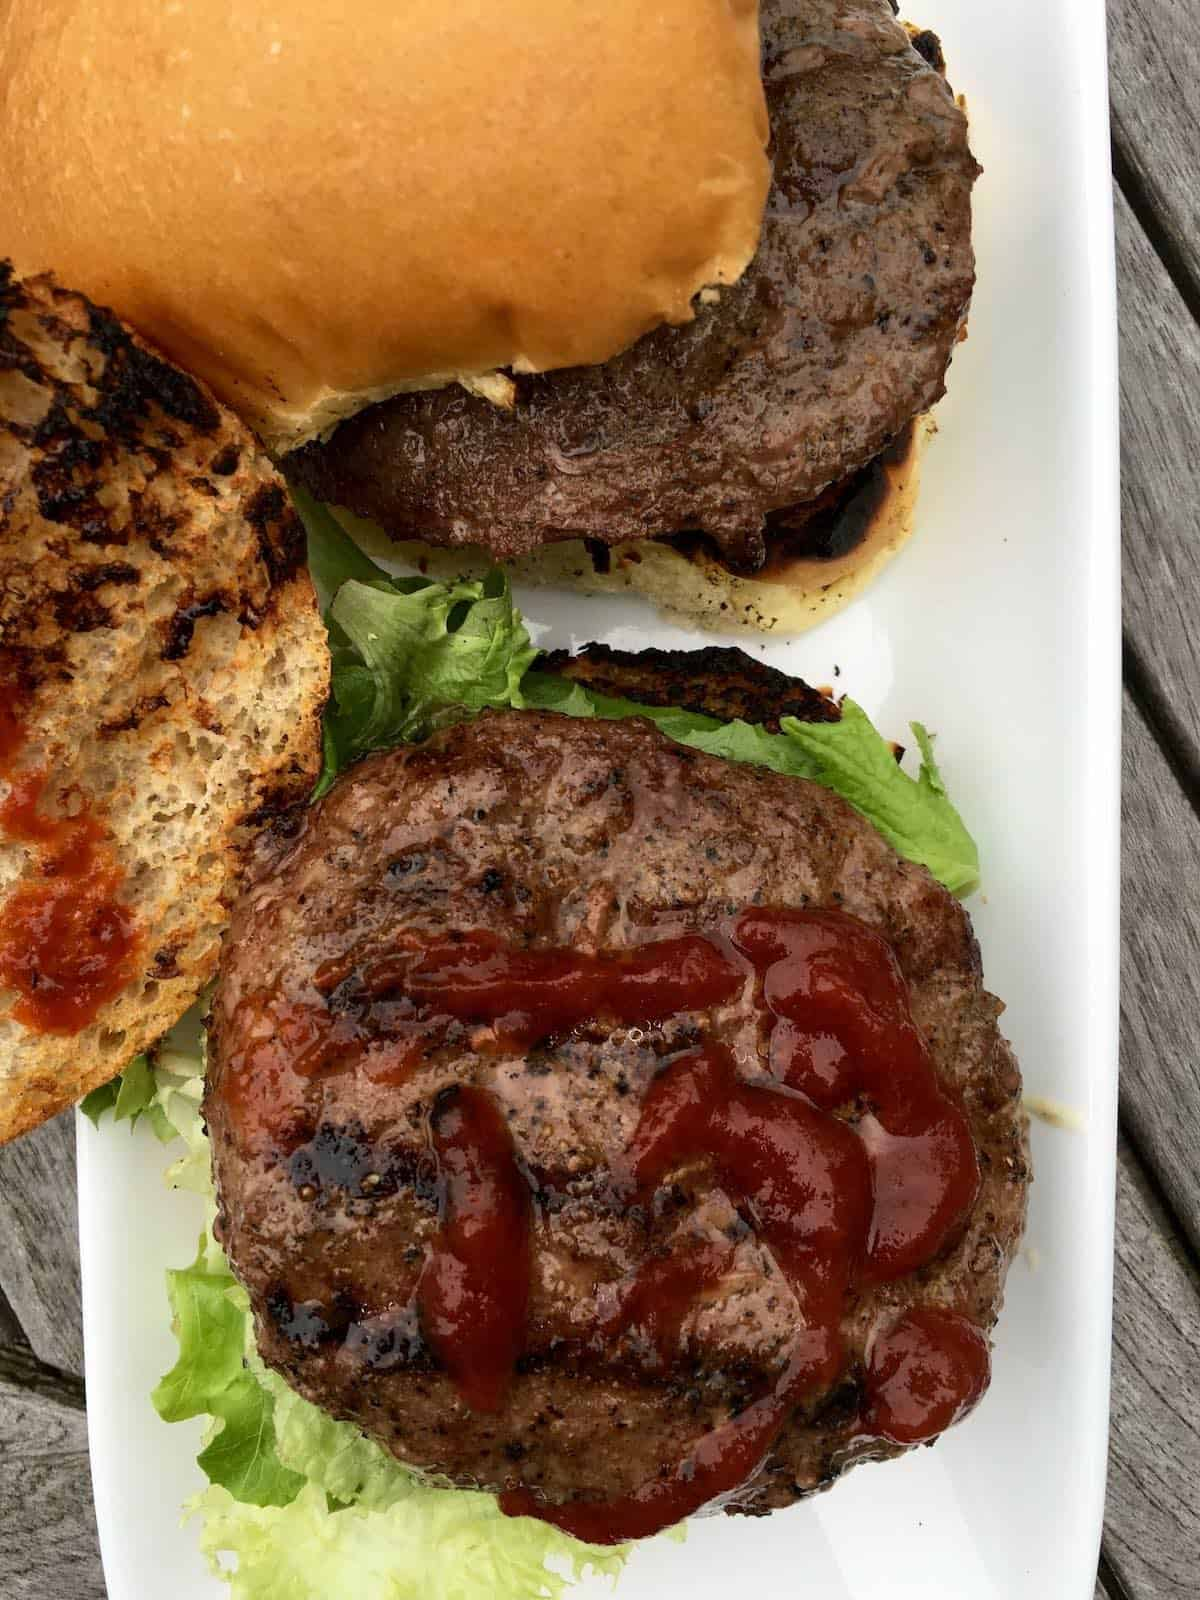 grilled burgers with ketchup and lettuce